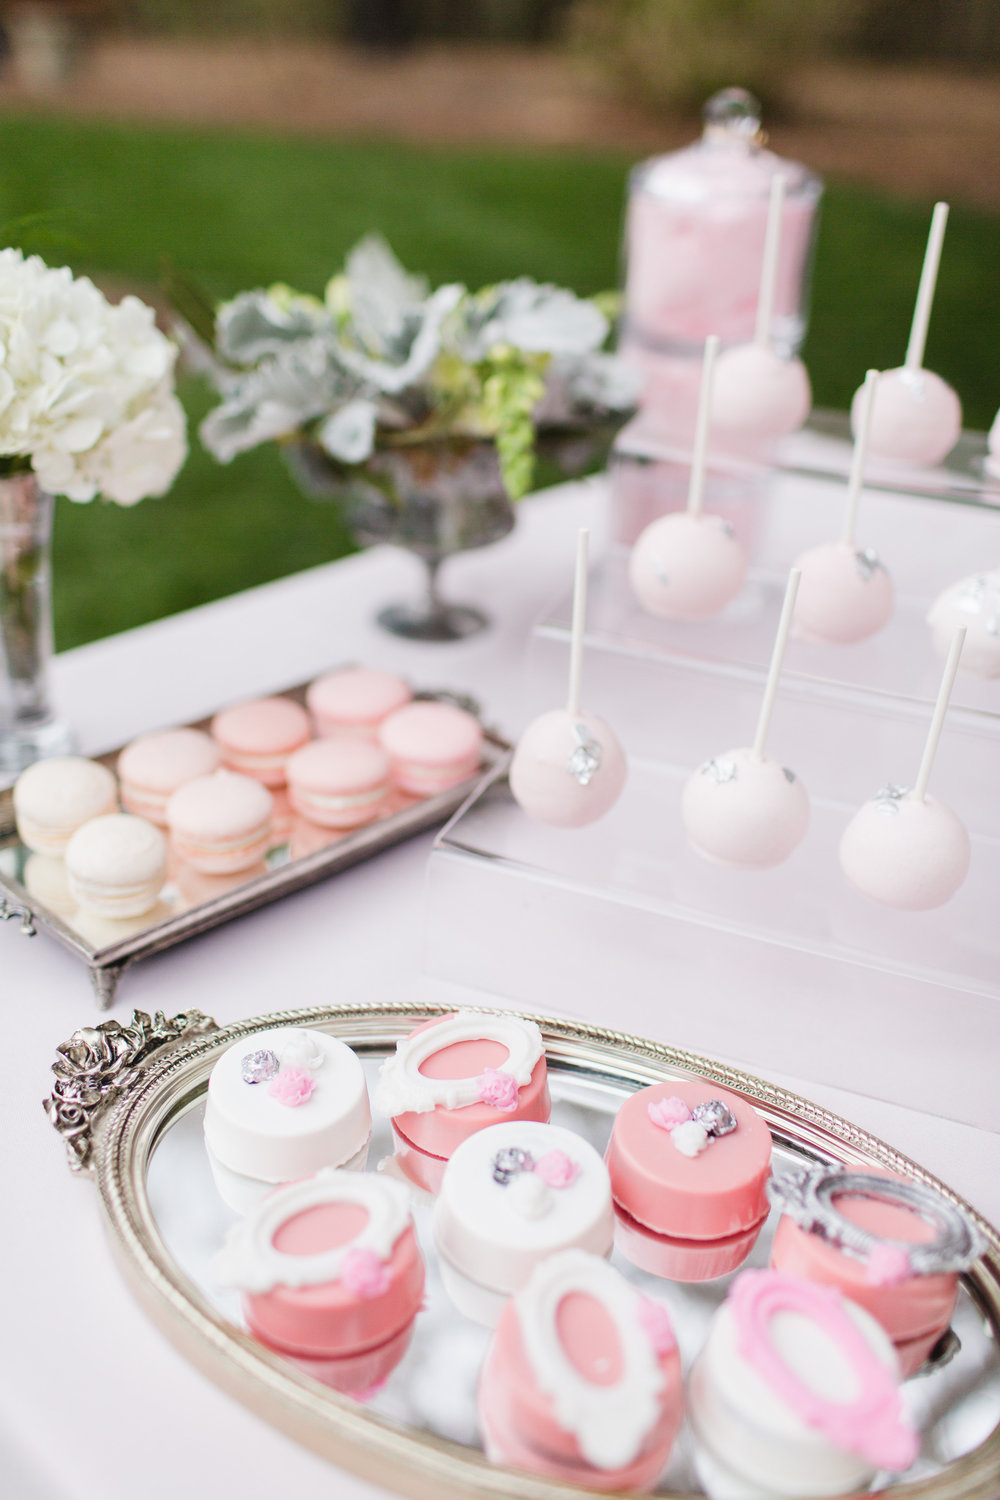 Cakes and Sweets-0108.jpg